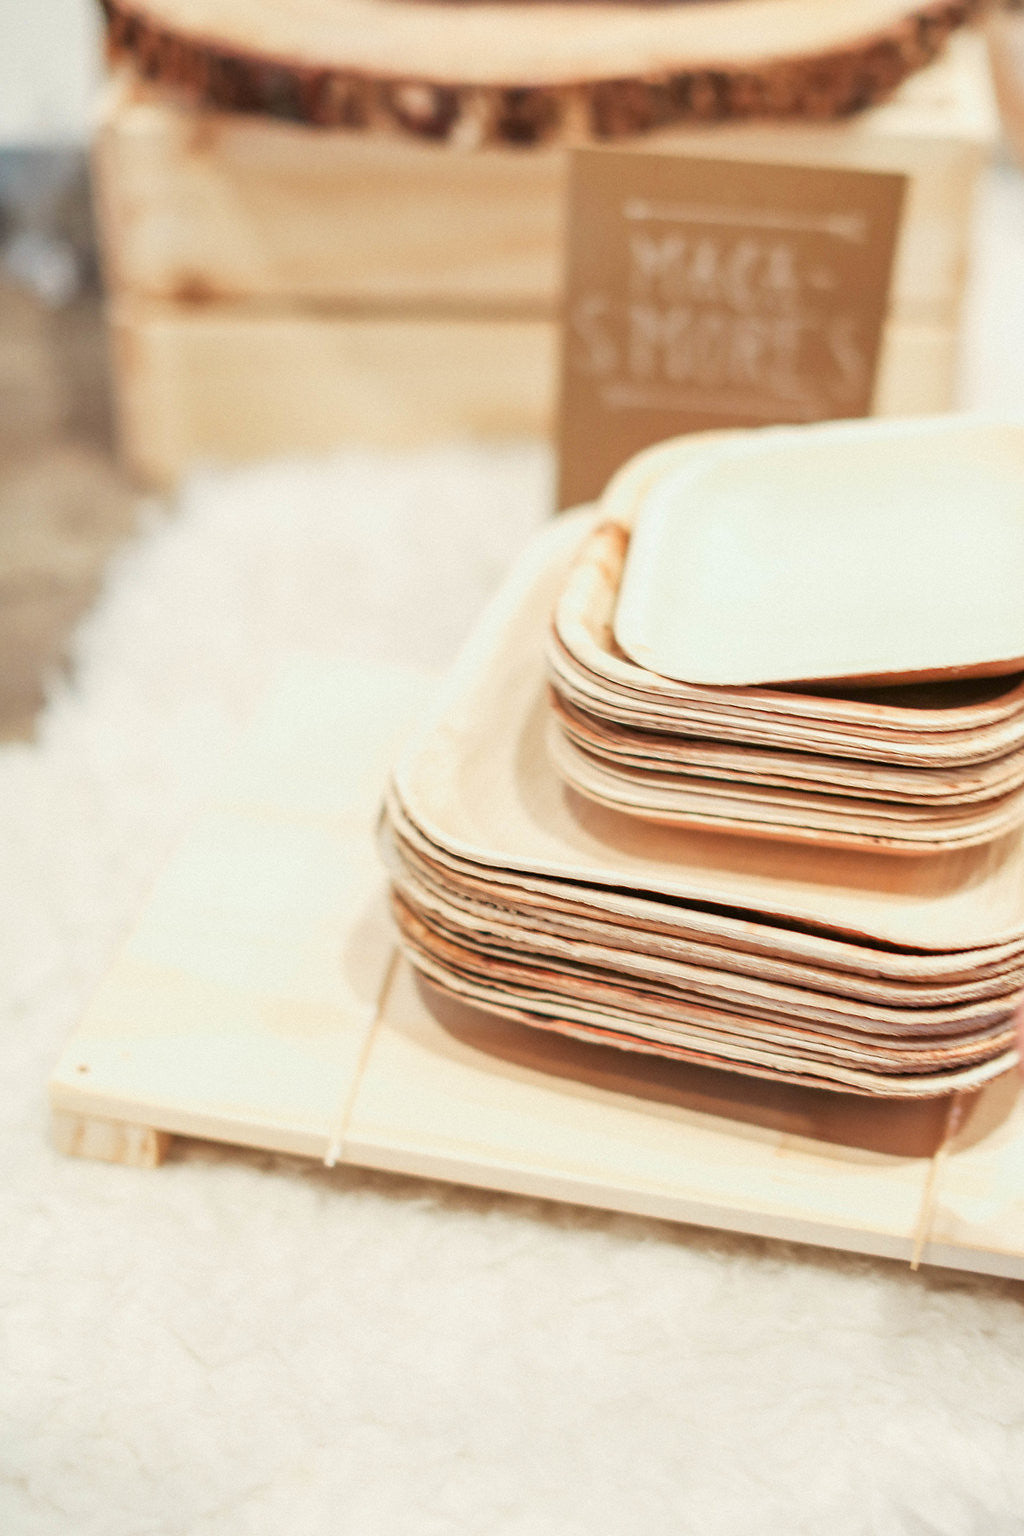 ... Frondware 5\  Palm Leaf Square Small Dessert Plates Natural Disposable Dinnerware Set ... & Paper Plate Alternatives - Small Palm Tree Plates - Paperless ...